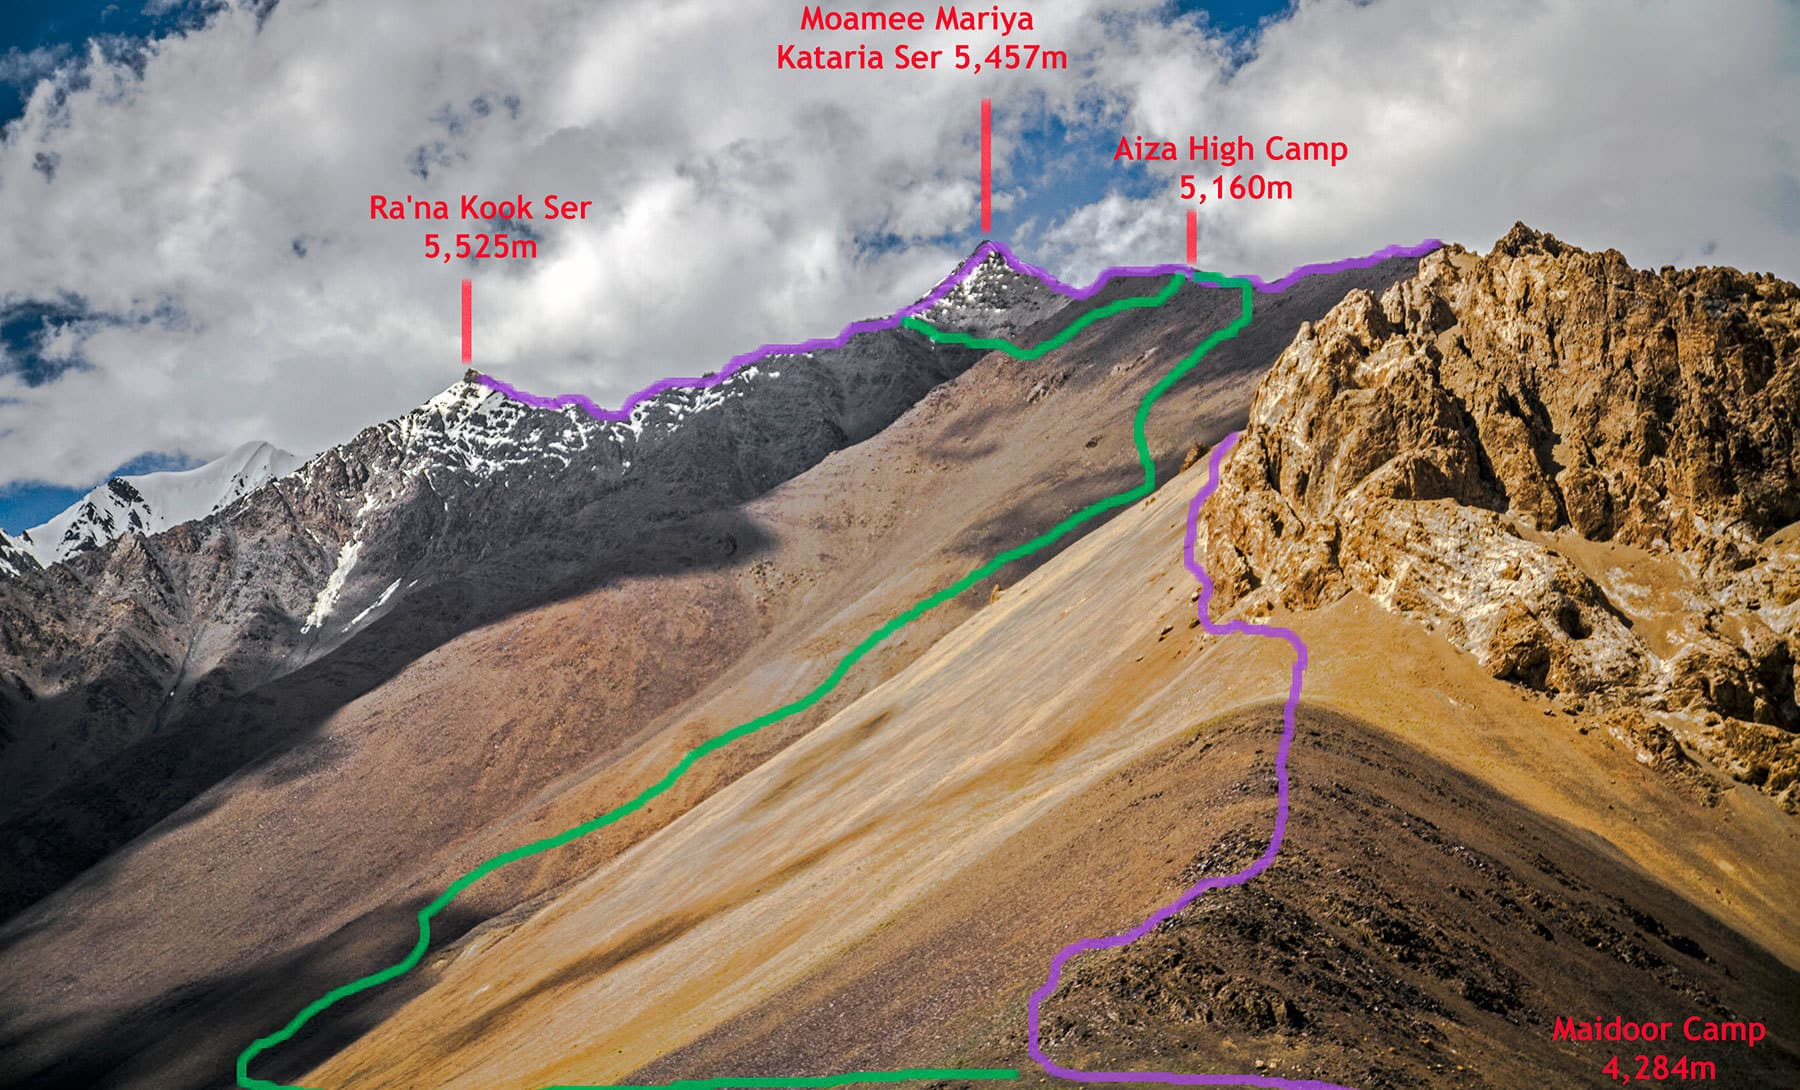 Purple marks the climbing route and green marks the descent route.